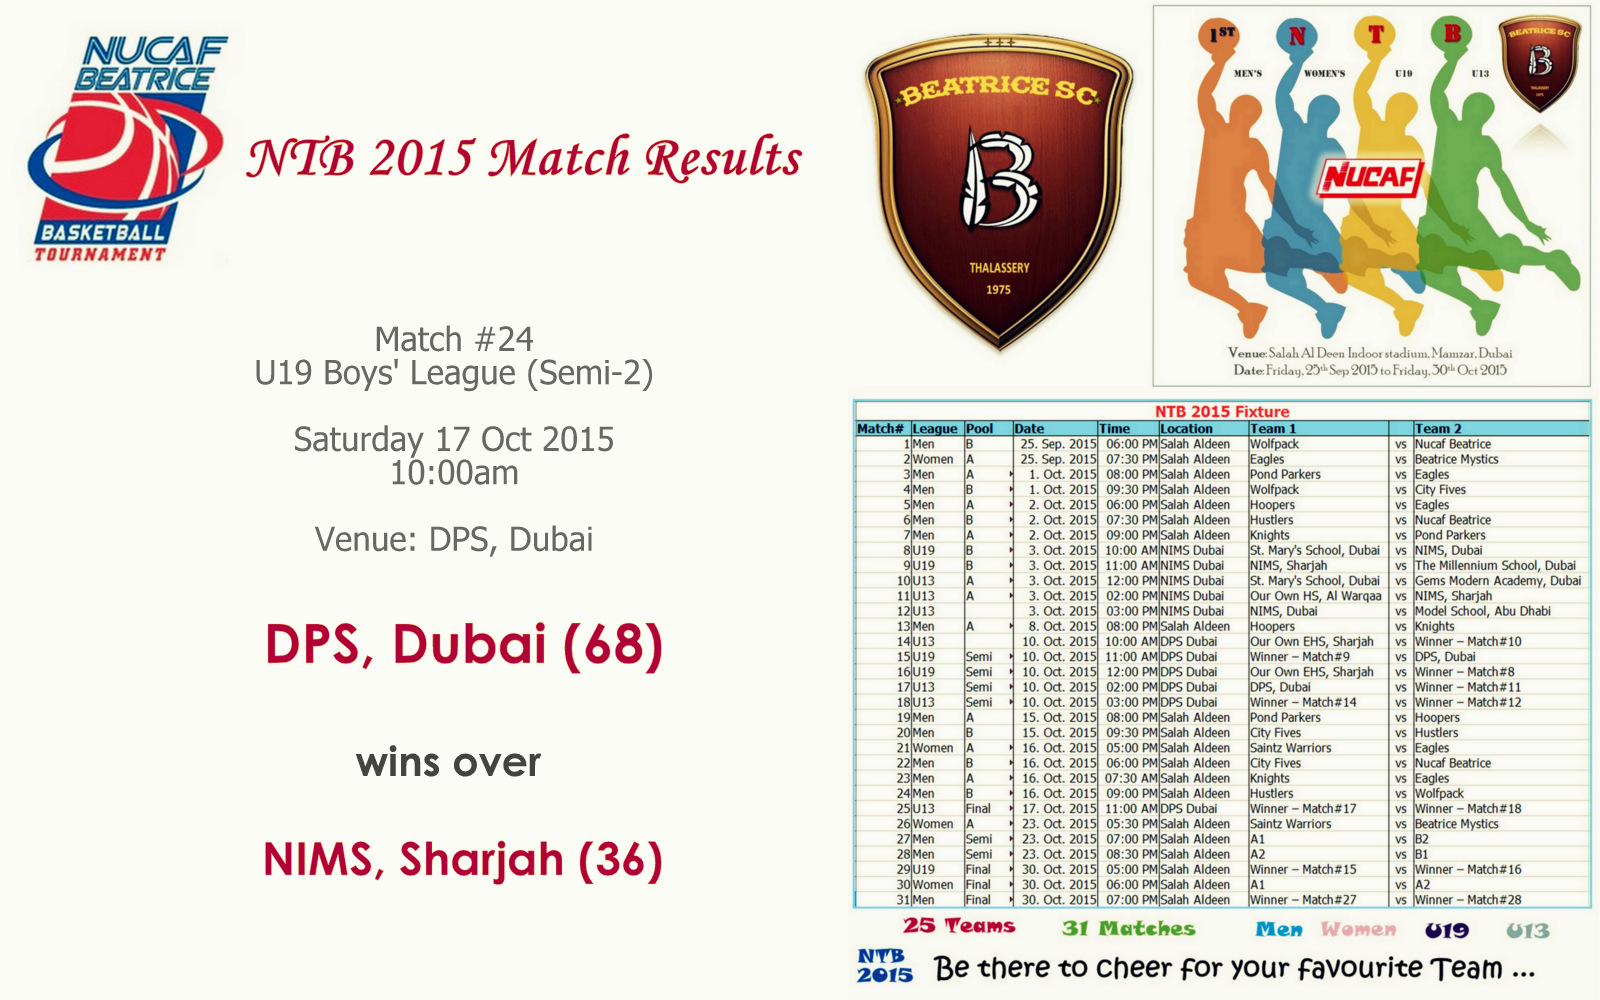 NTB 2015 – Match #24 (U19 Semi 2) | NIMS, Sharjah (36) Vs DPS, Dubai (68)